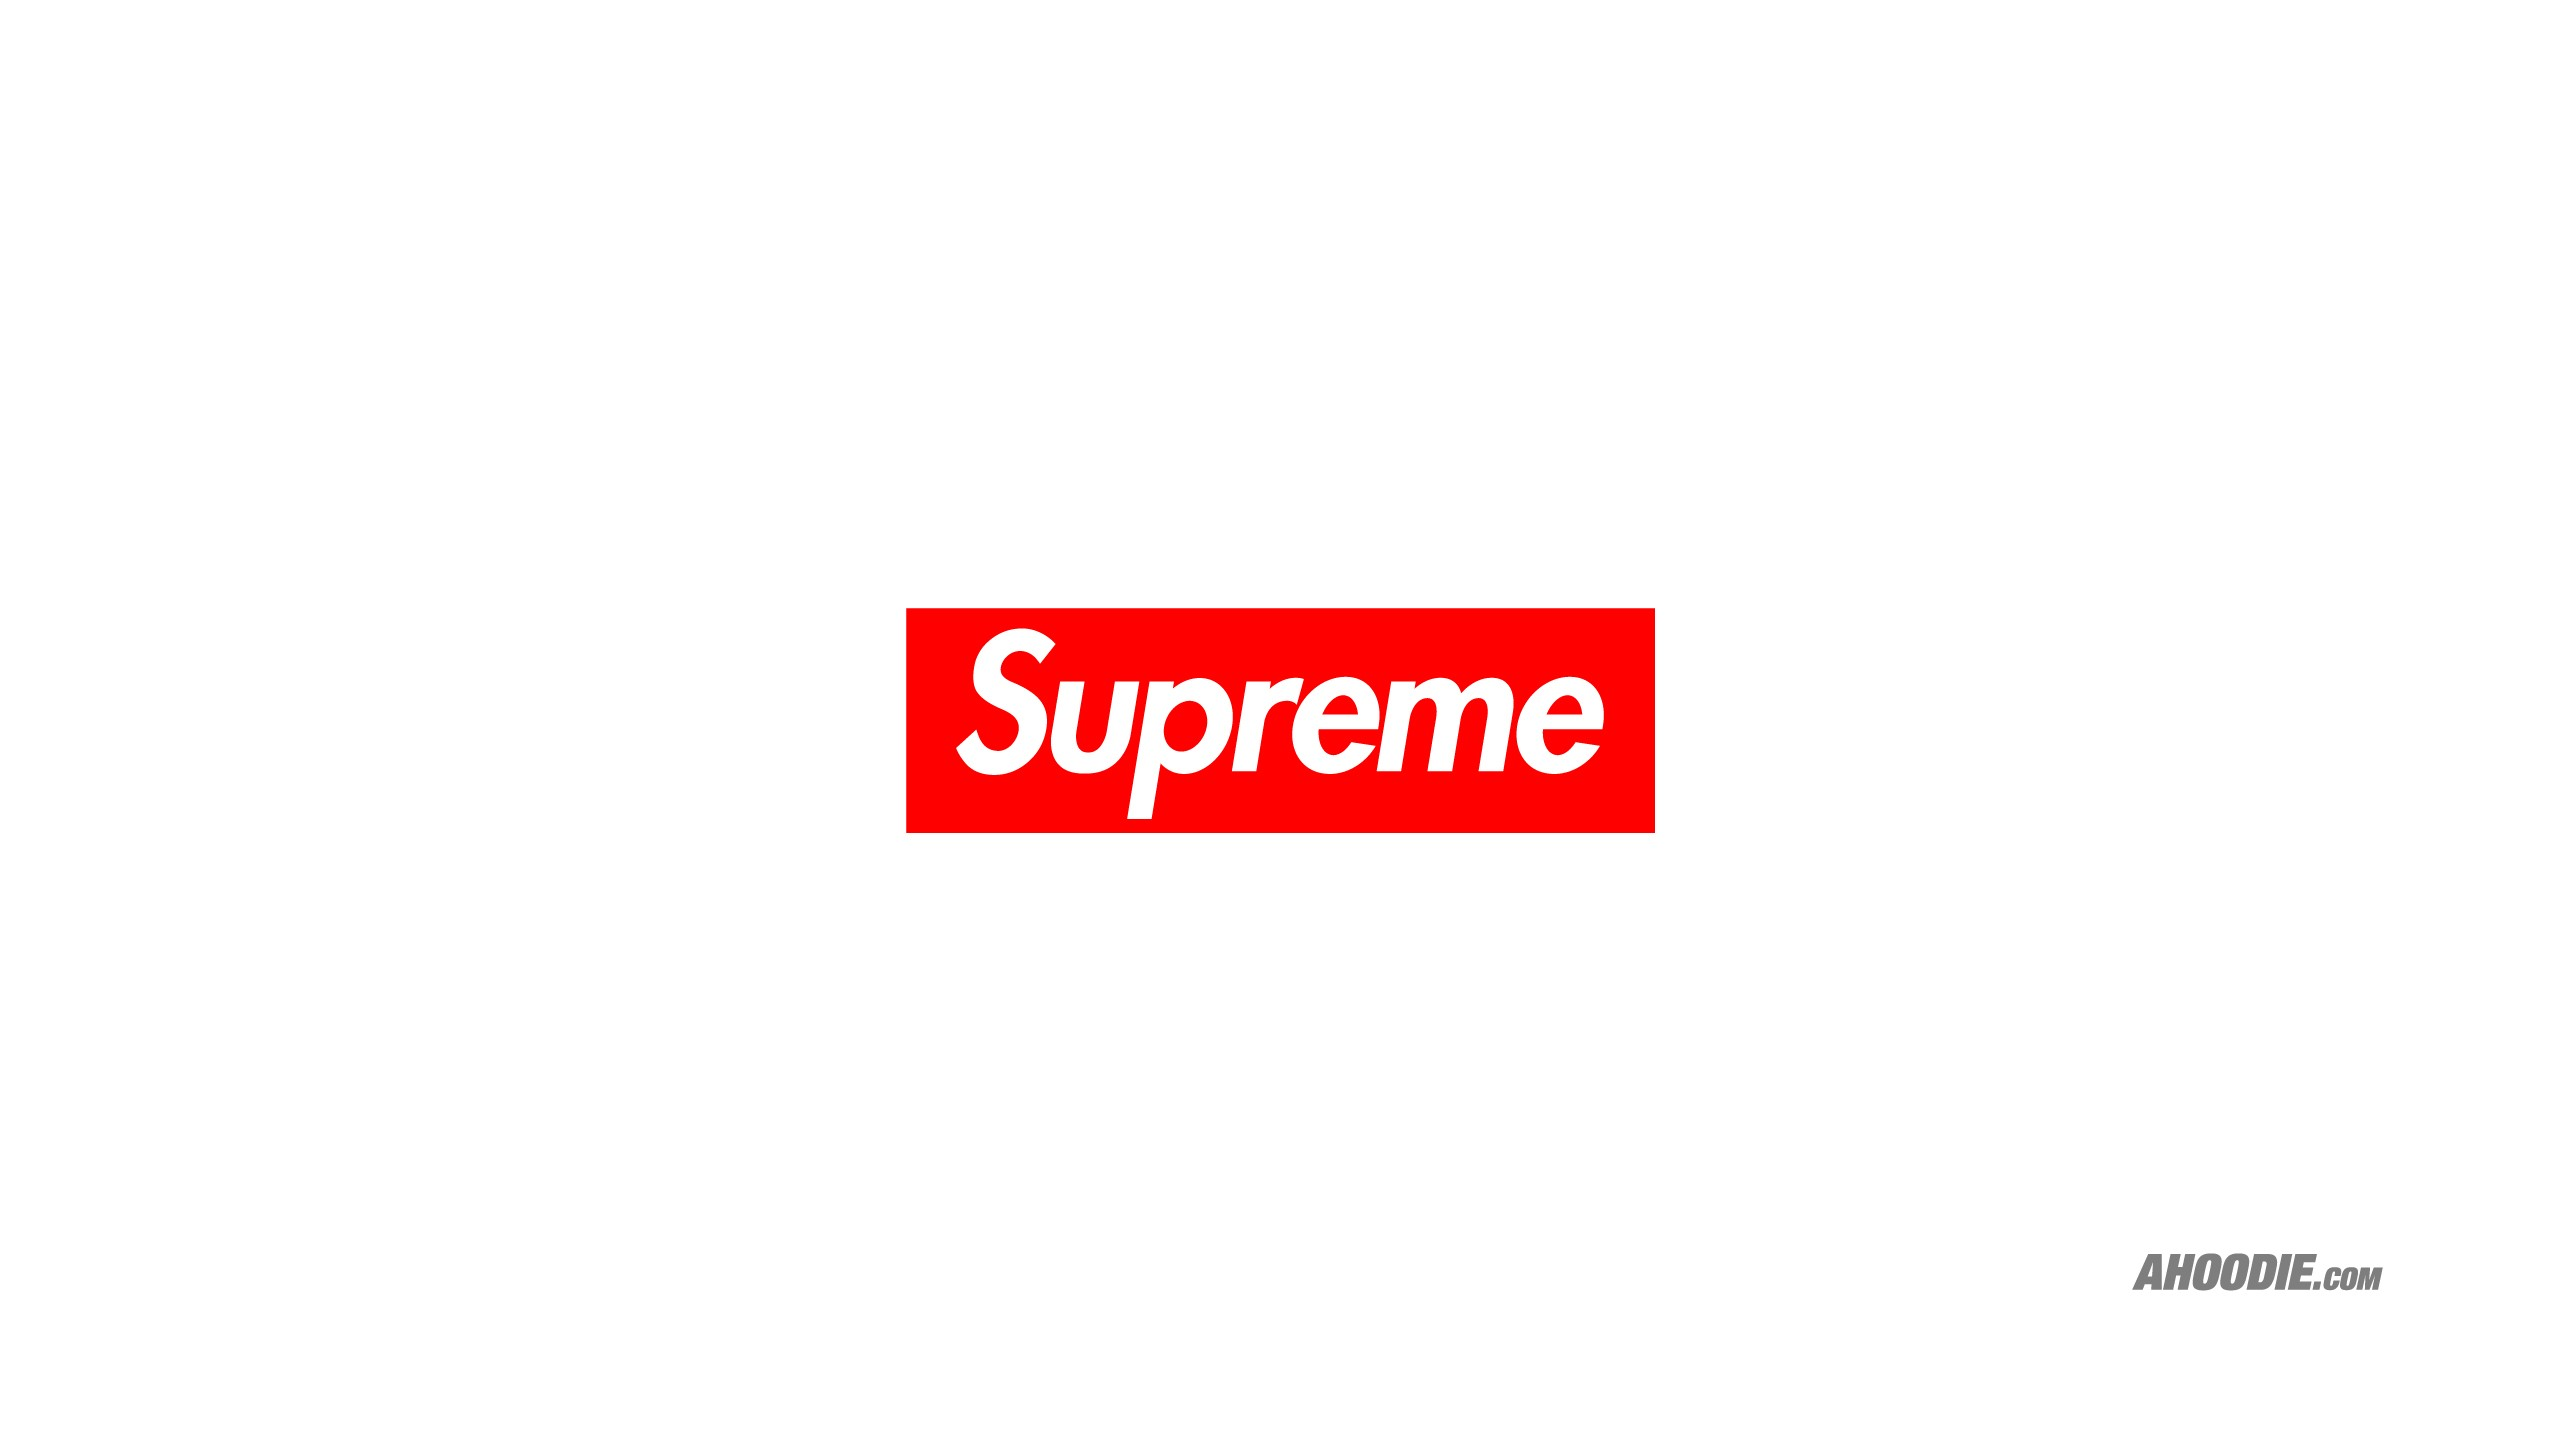 supreme wallpaper hd desktop wallpaper sportstle